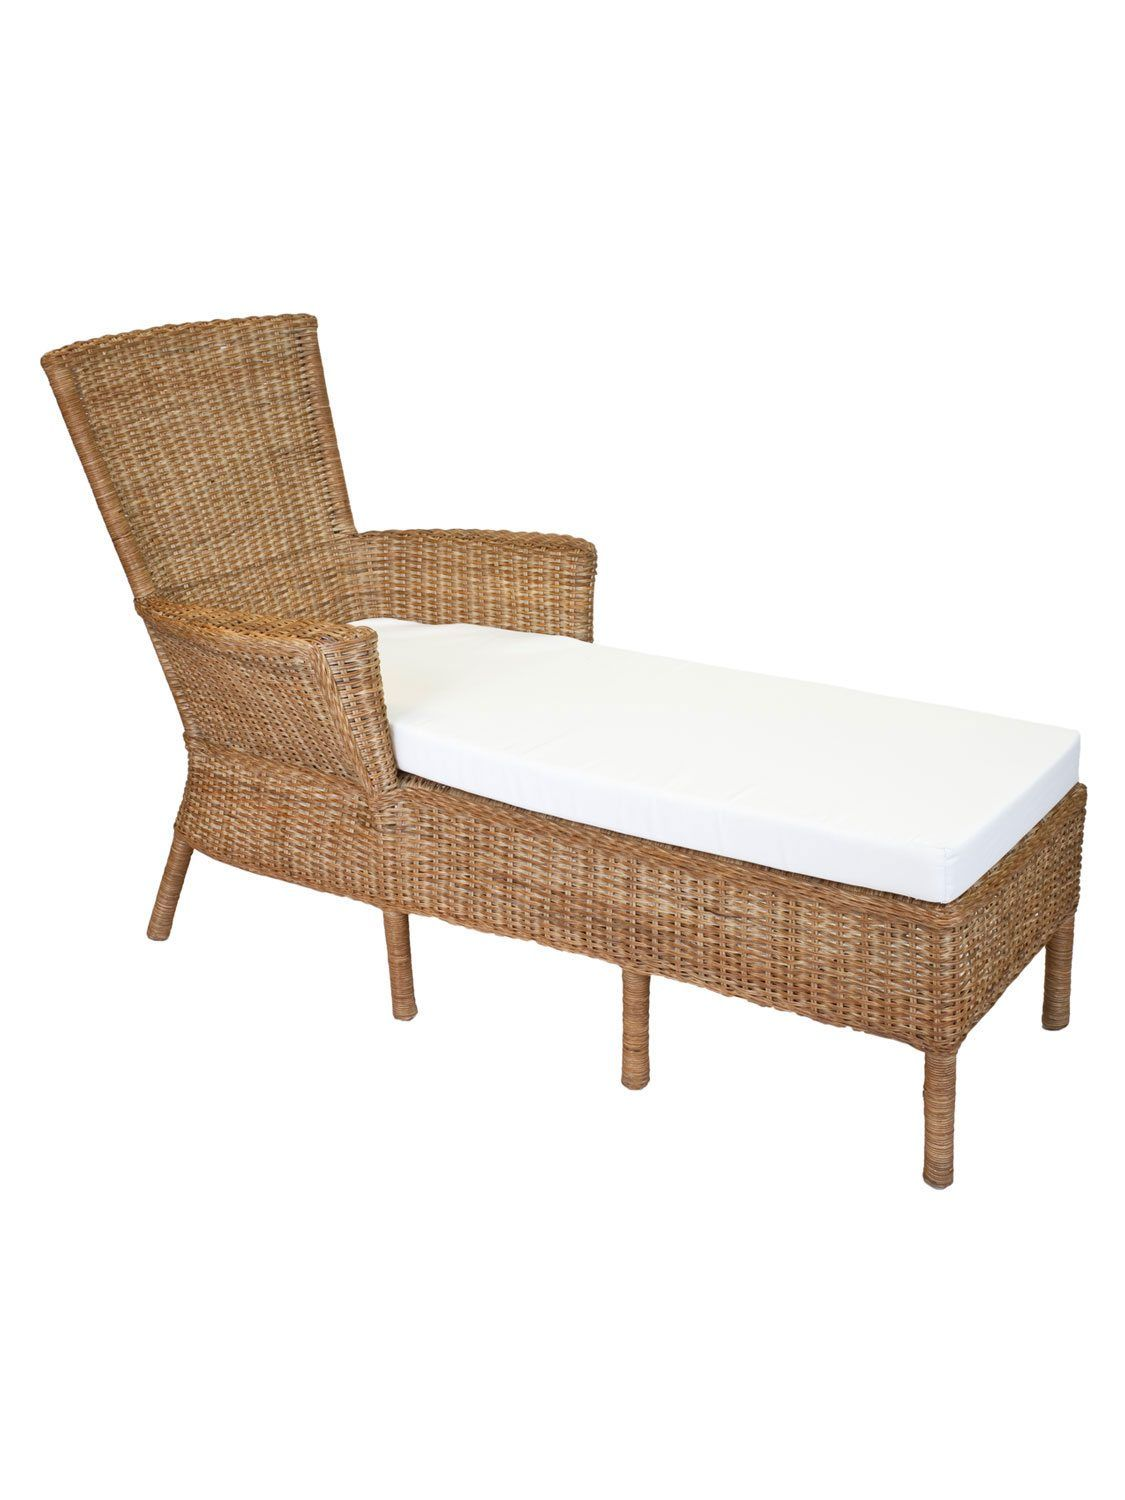 Chaise Z Puget Sound Wicker Chaise With Arms In 2019 Z Extra